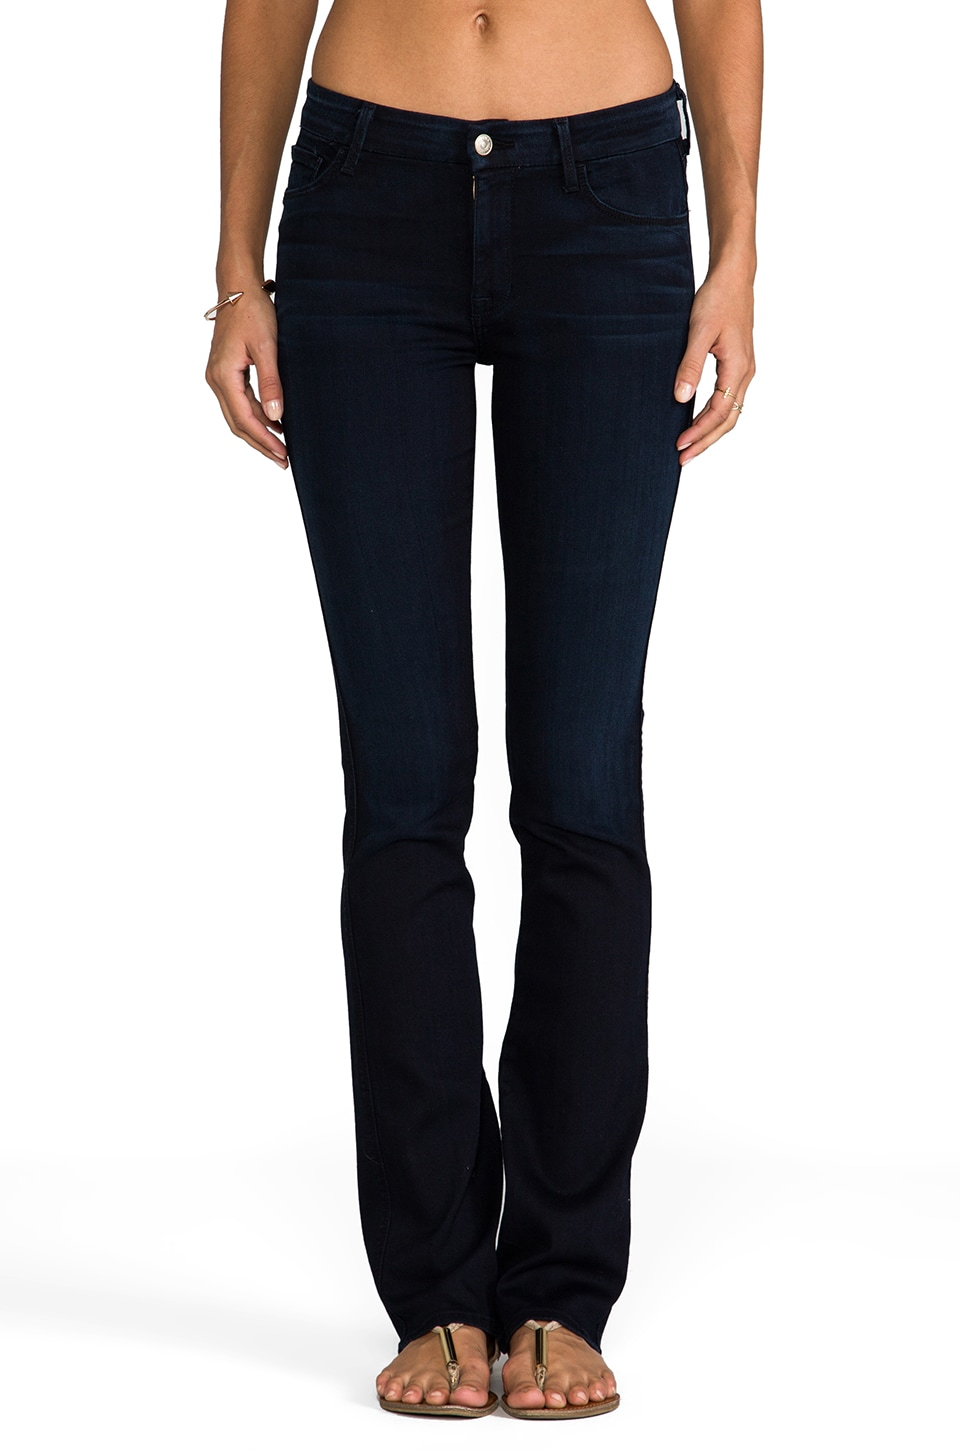 7 For All Mankind The Skinny Bootcut in Black Weft Dark Blue